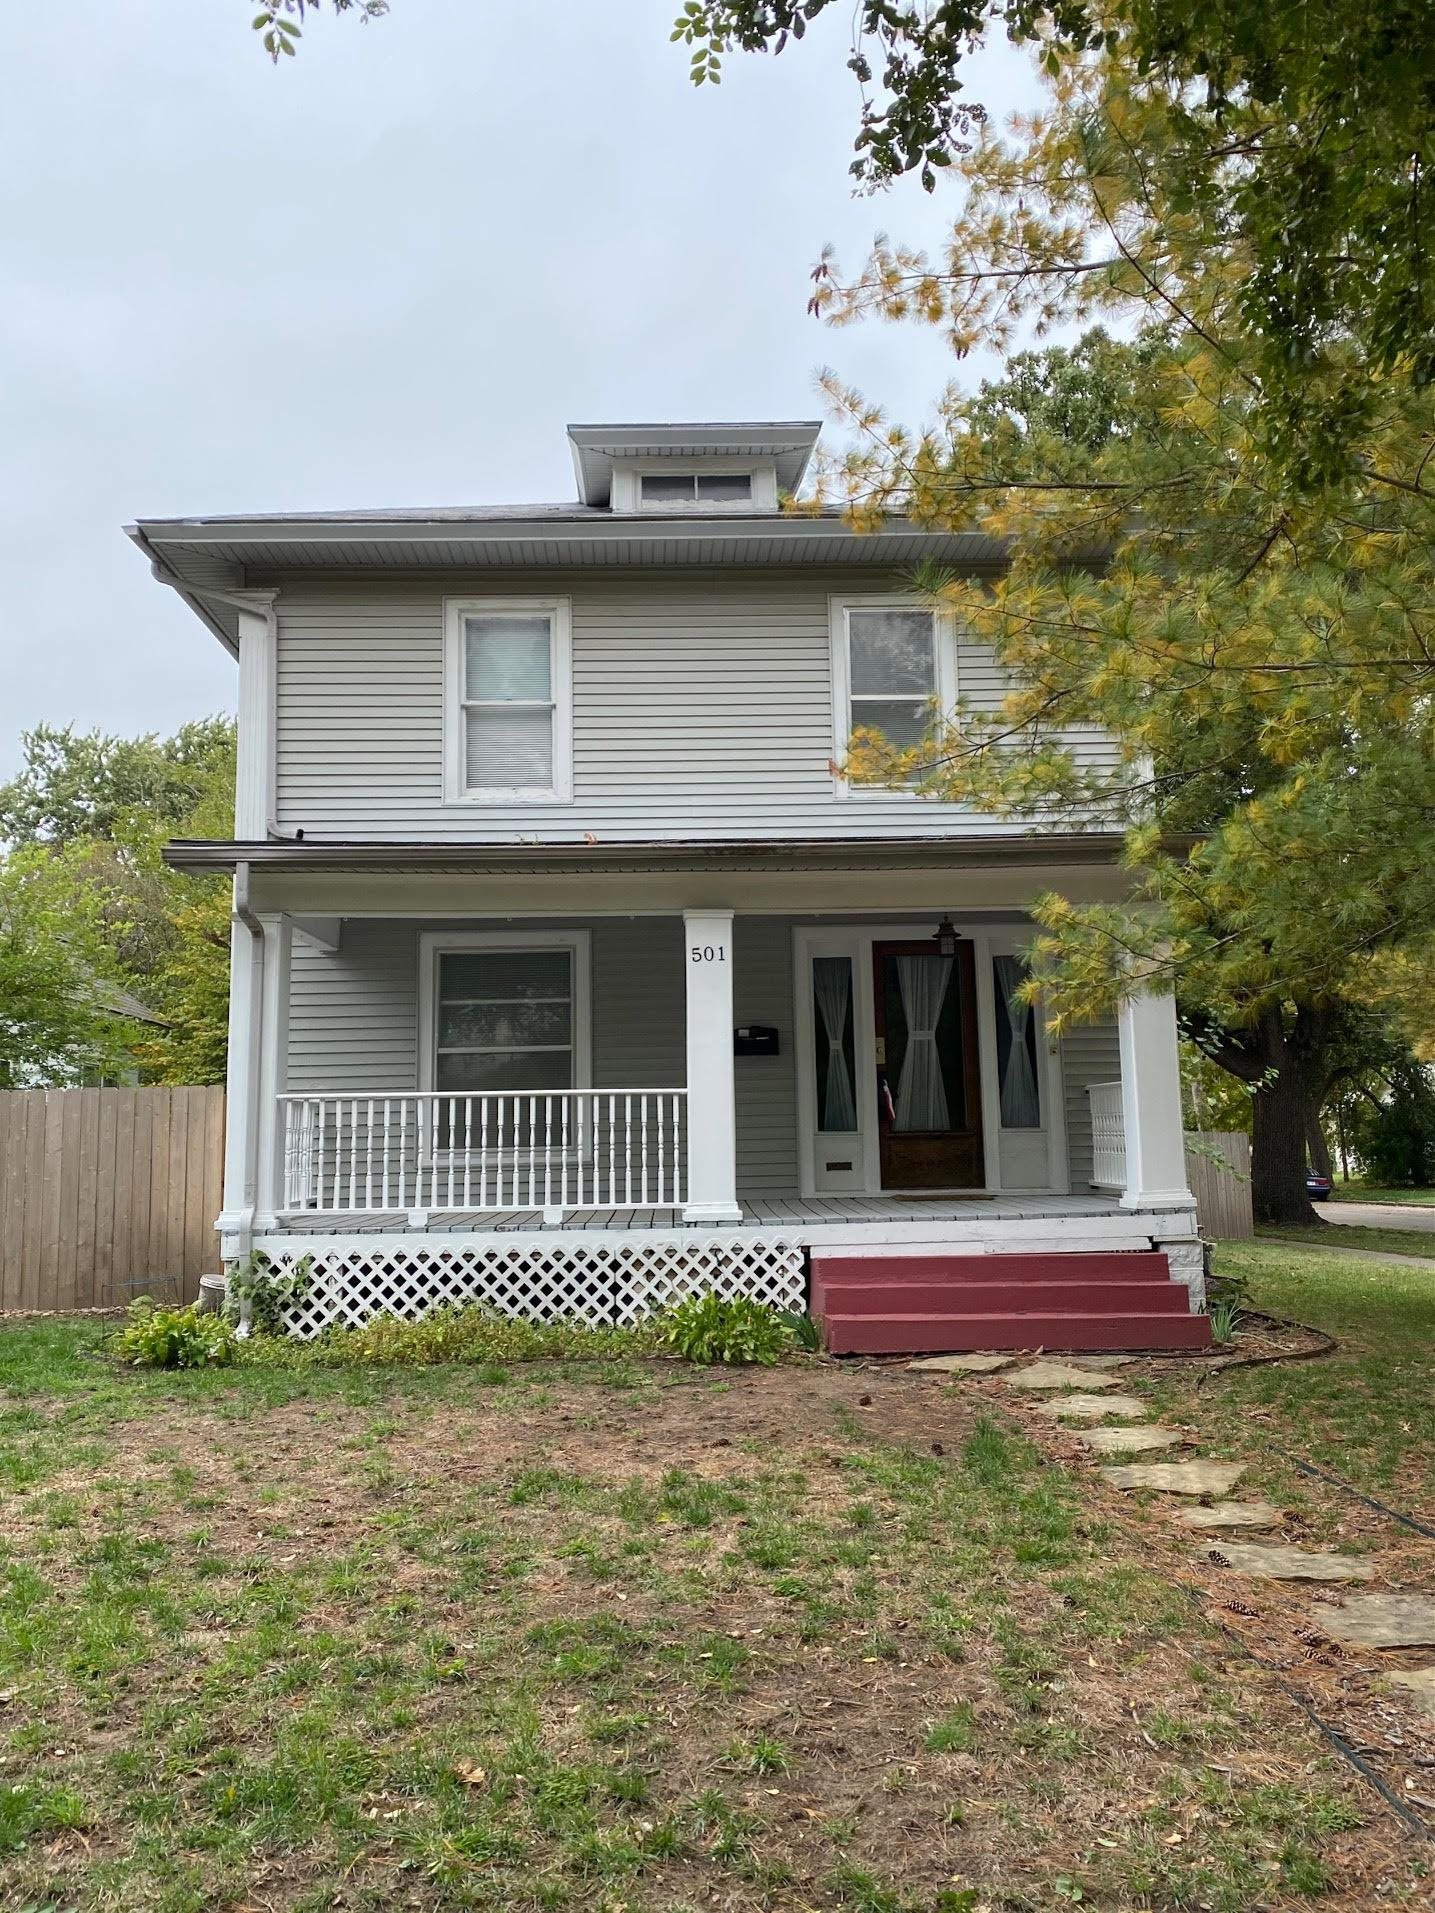 Historic home with LOTS of character in the Delano area. Right down the street from beautiful Friend